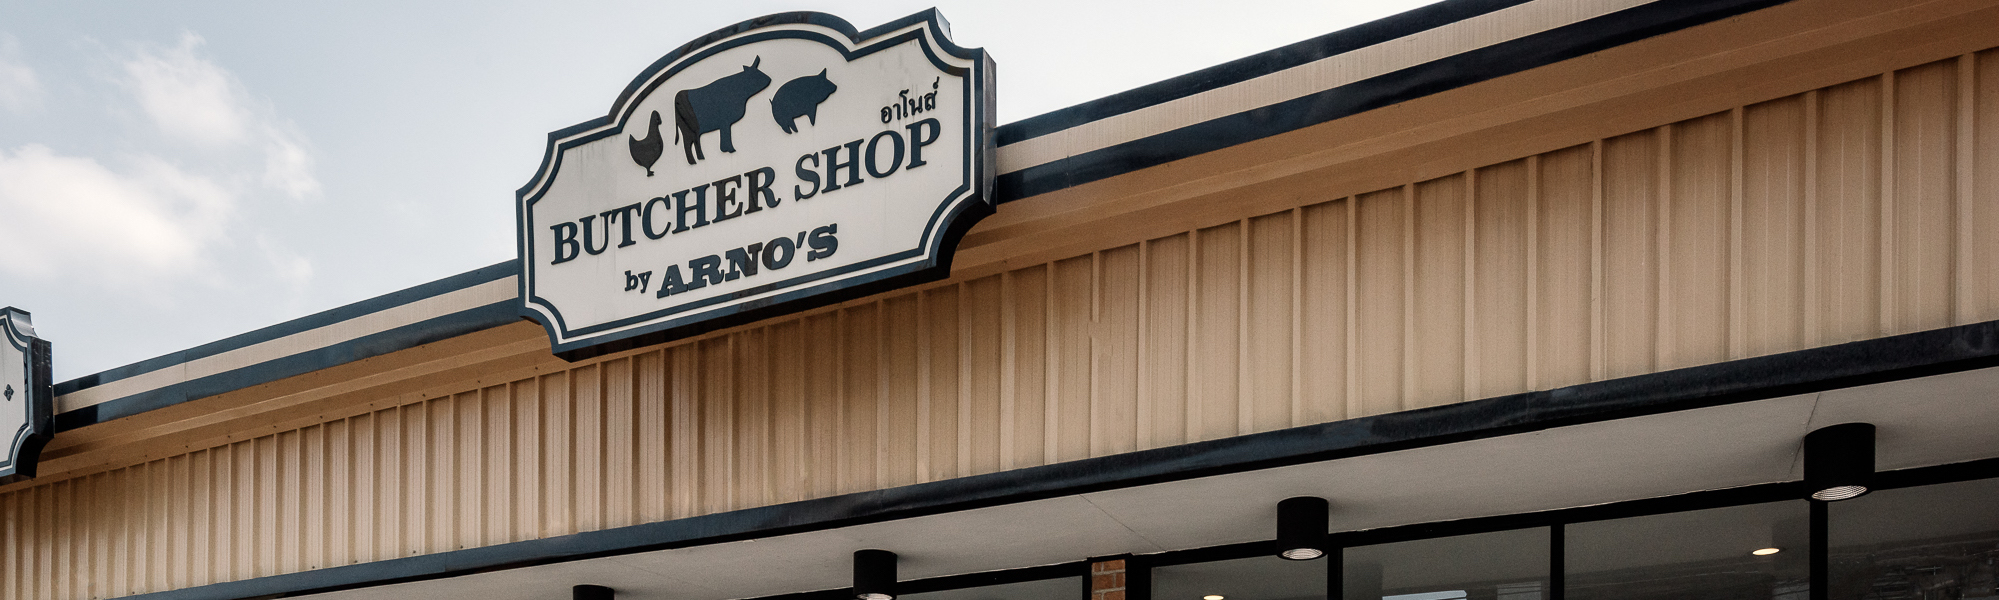 Butcher Shop by Arno's